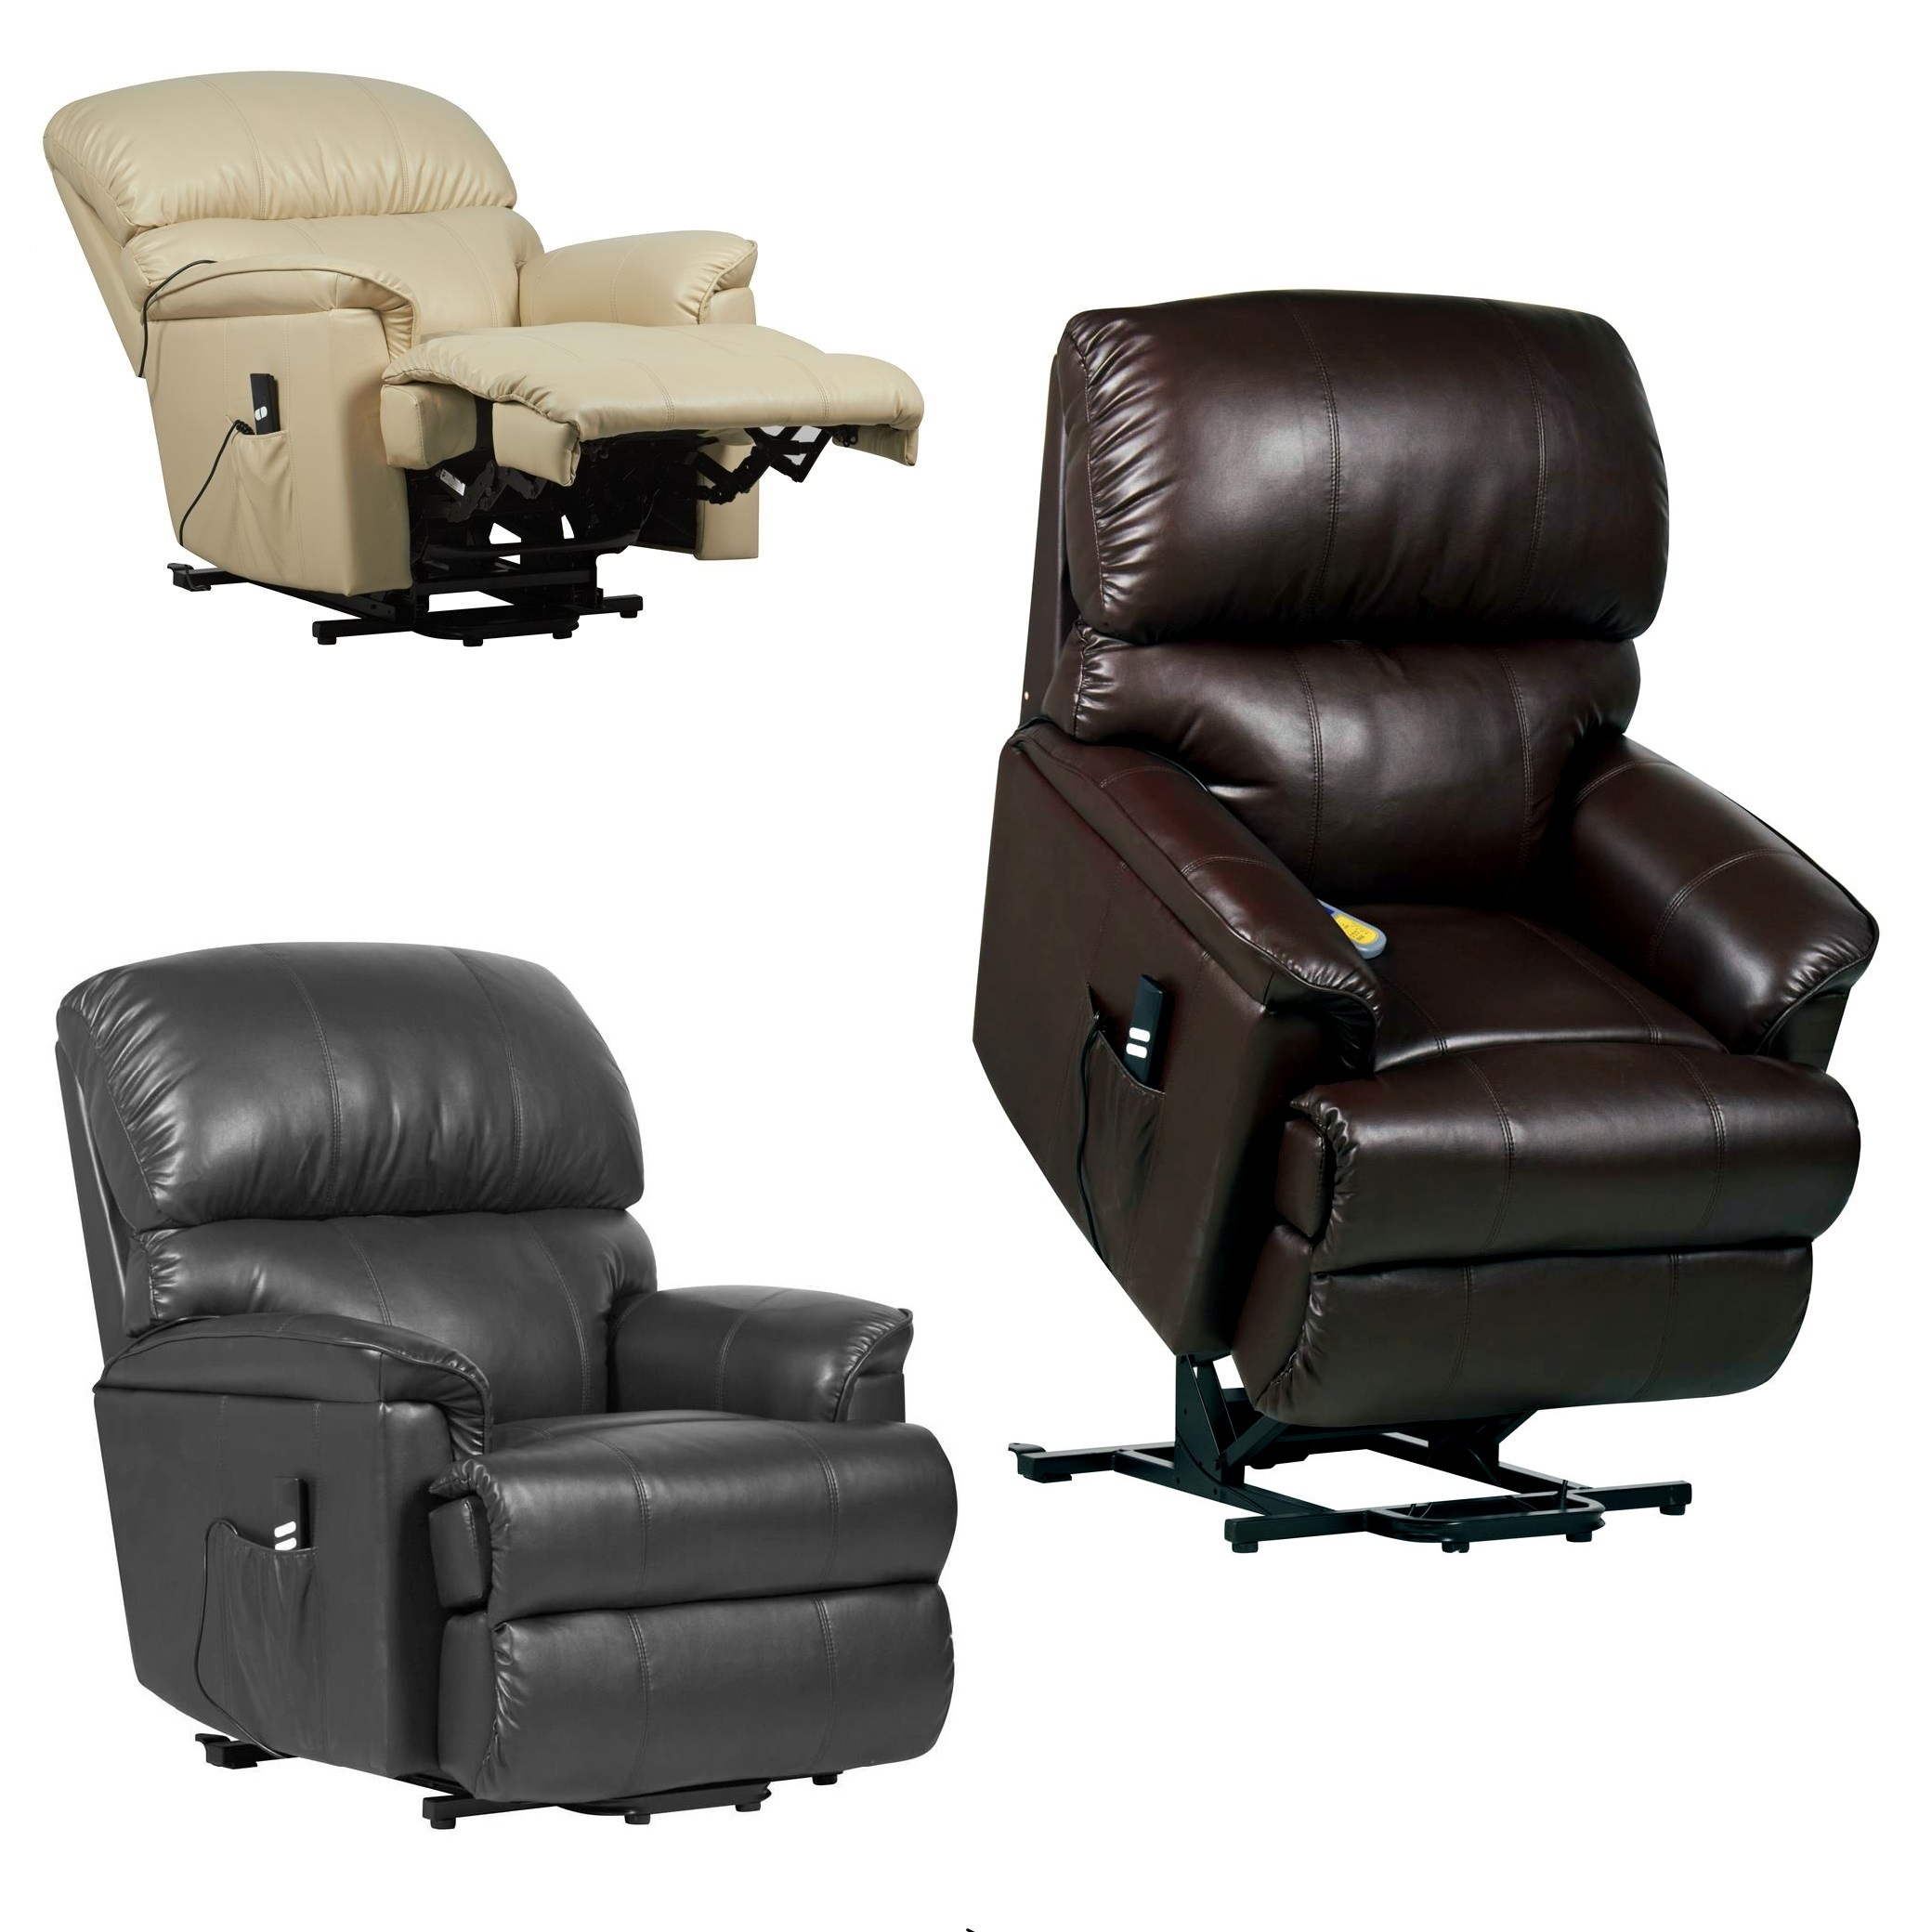 recliner riser chairs uk plastic folding tables and wholesale canterbury dual motor chair living made easy